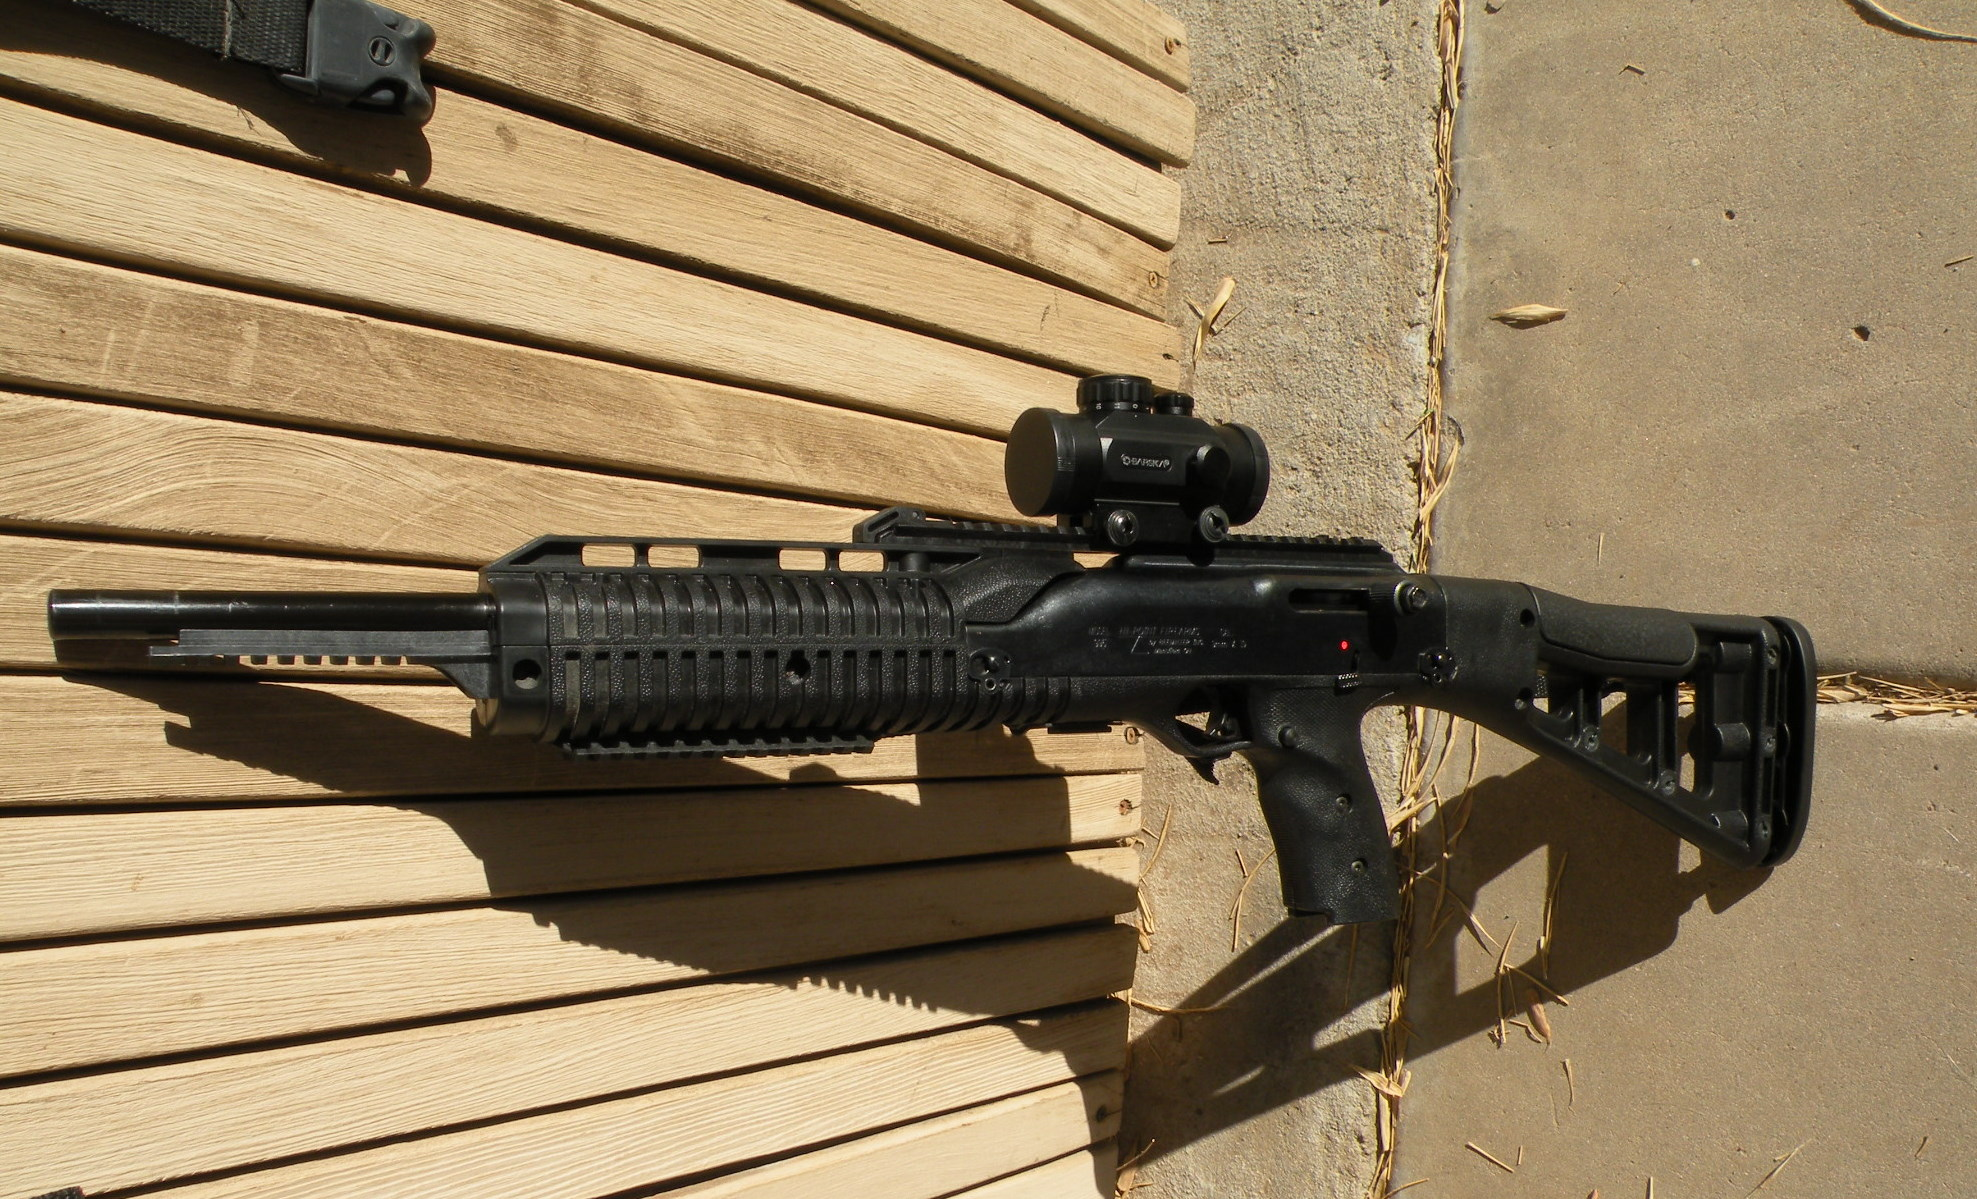 The Little Carbine That Could: A Hi-Point 995 Carbine